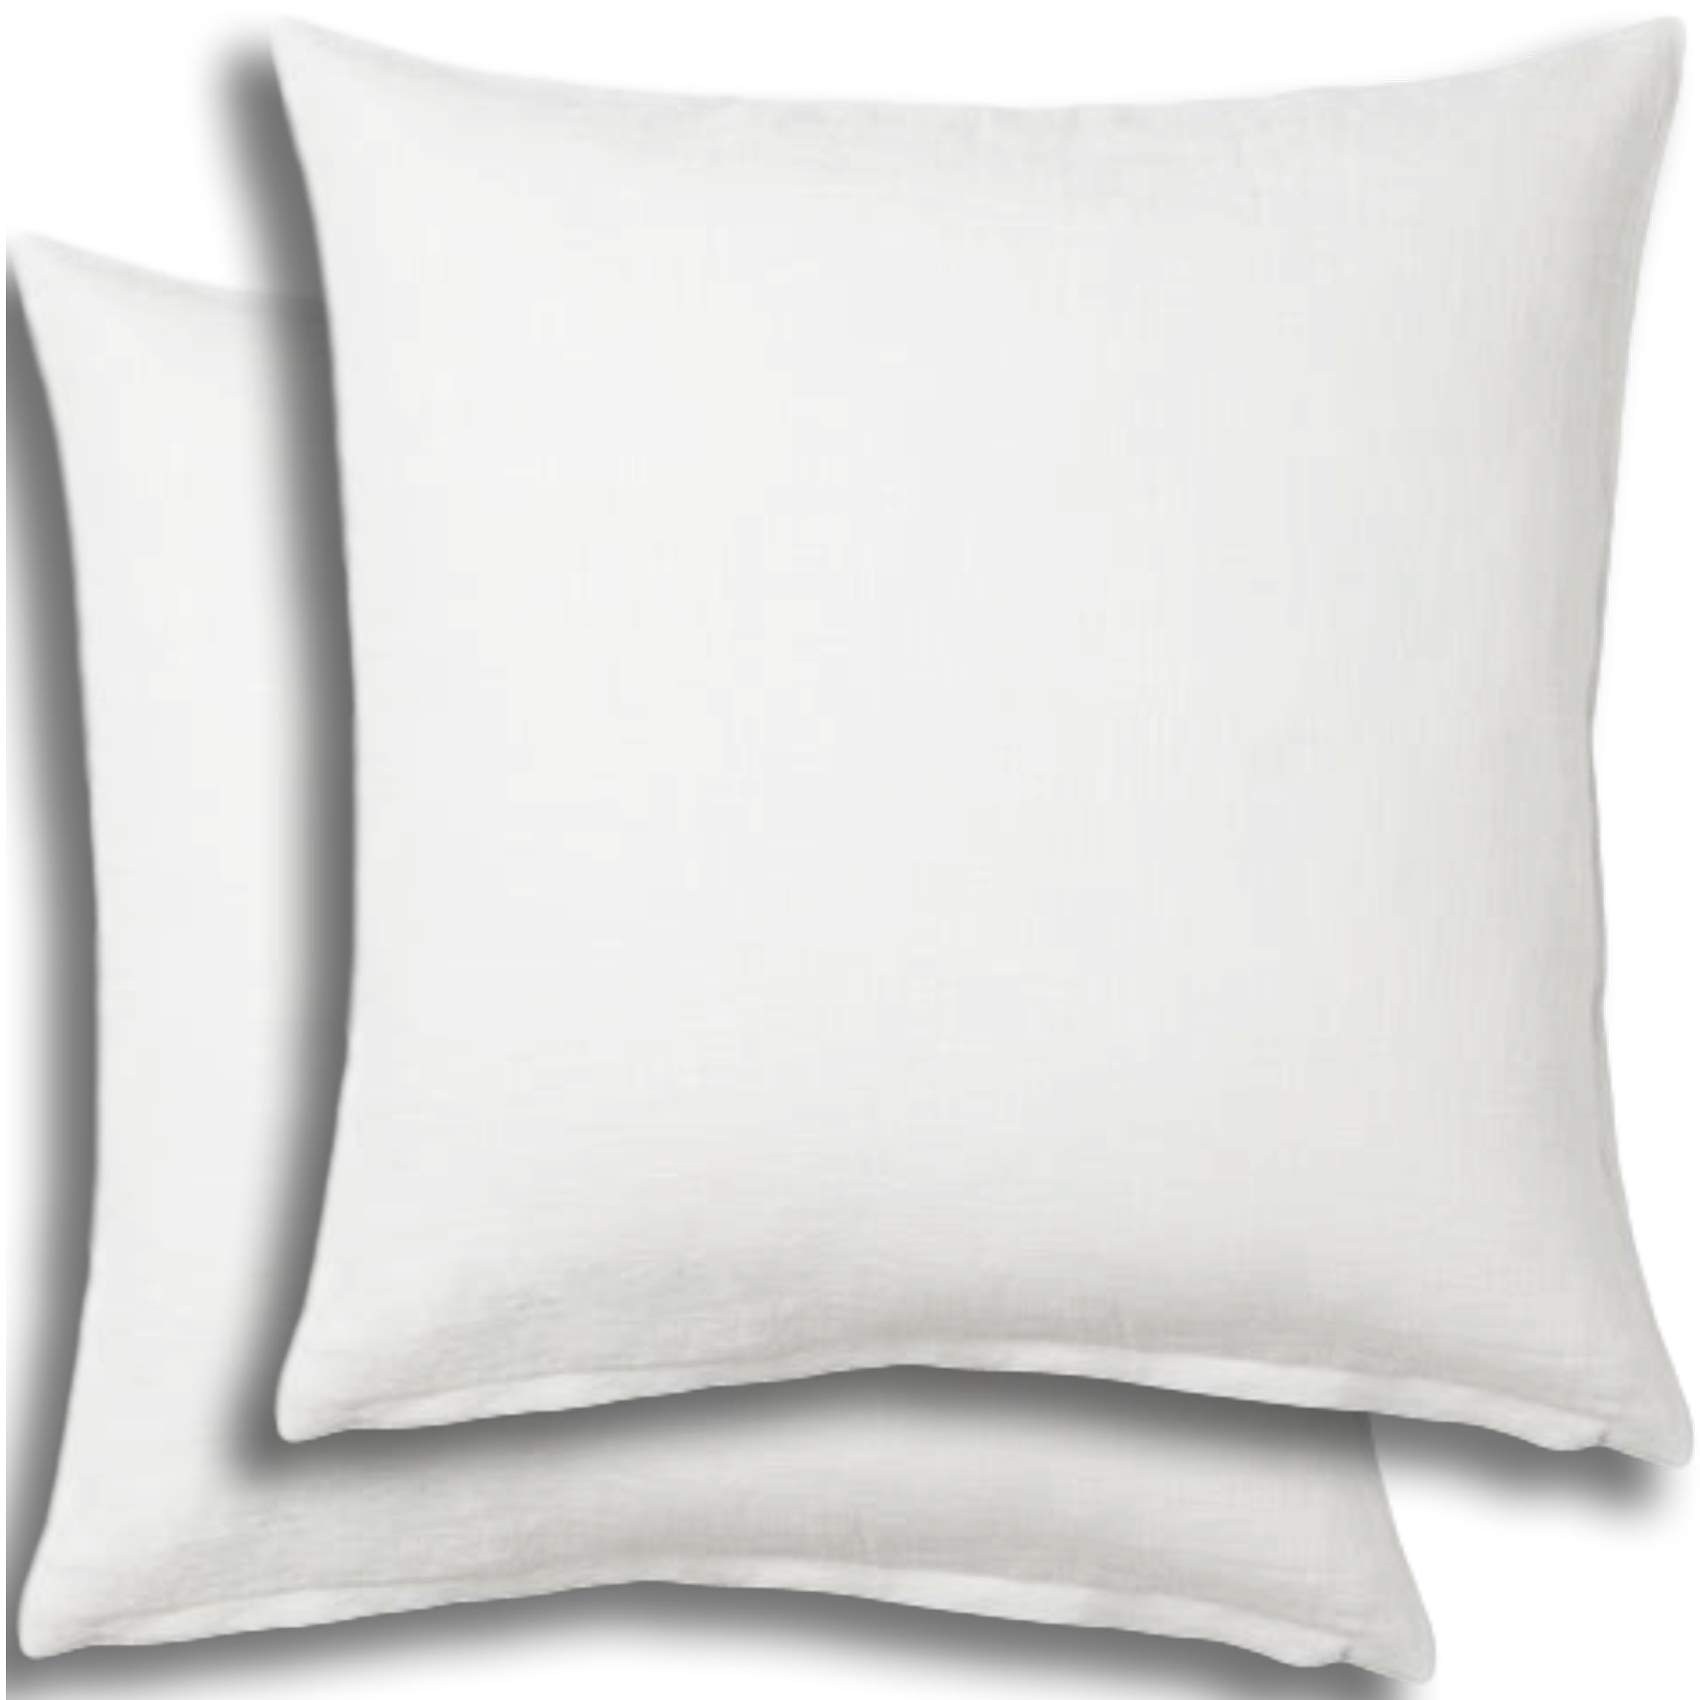 Set of 2 - Pillow Insert 28x28 Decorative Throw Pillow Inserts - Euro Sham Stuffer for Sofa Bed Couch Square White Form 2 Pack - Hypoallergenic Machine Washable and Dry Polyester - Made in USA